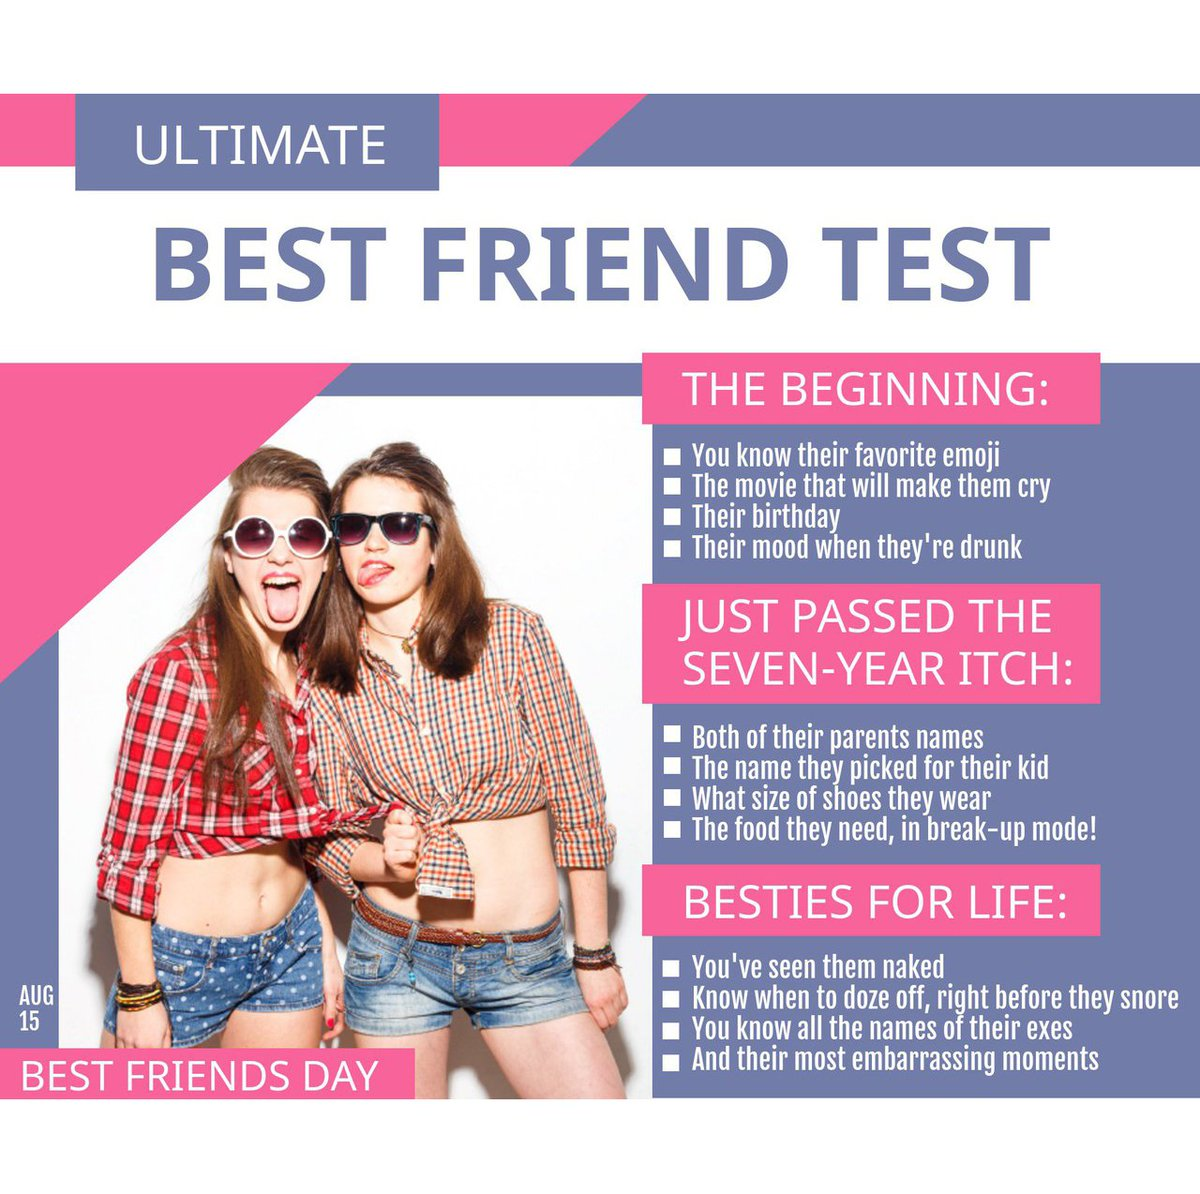 I&#39;m lucky enough to have the coolest best friend in the world - how about you?  #bestfriends #BestFriend #bestfriendsday #BFF #BFFs #friends<br>http://pic.twitter.com/4hW2lII3qZ